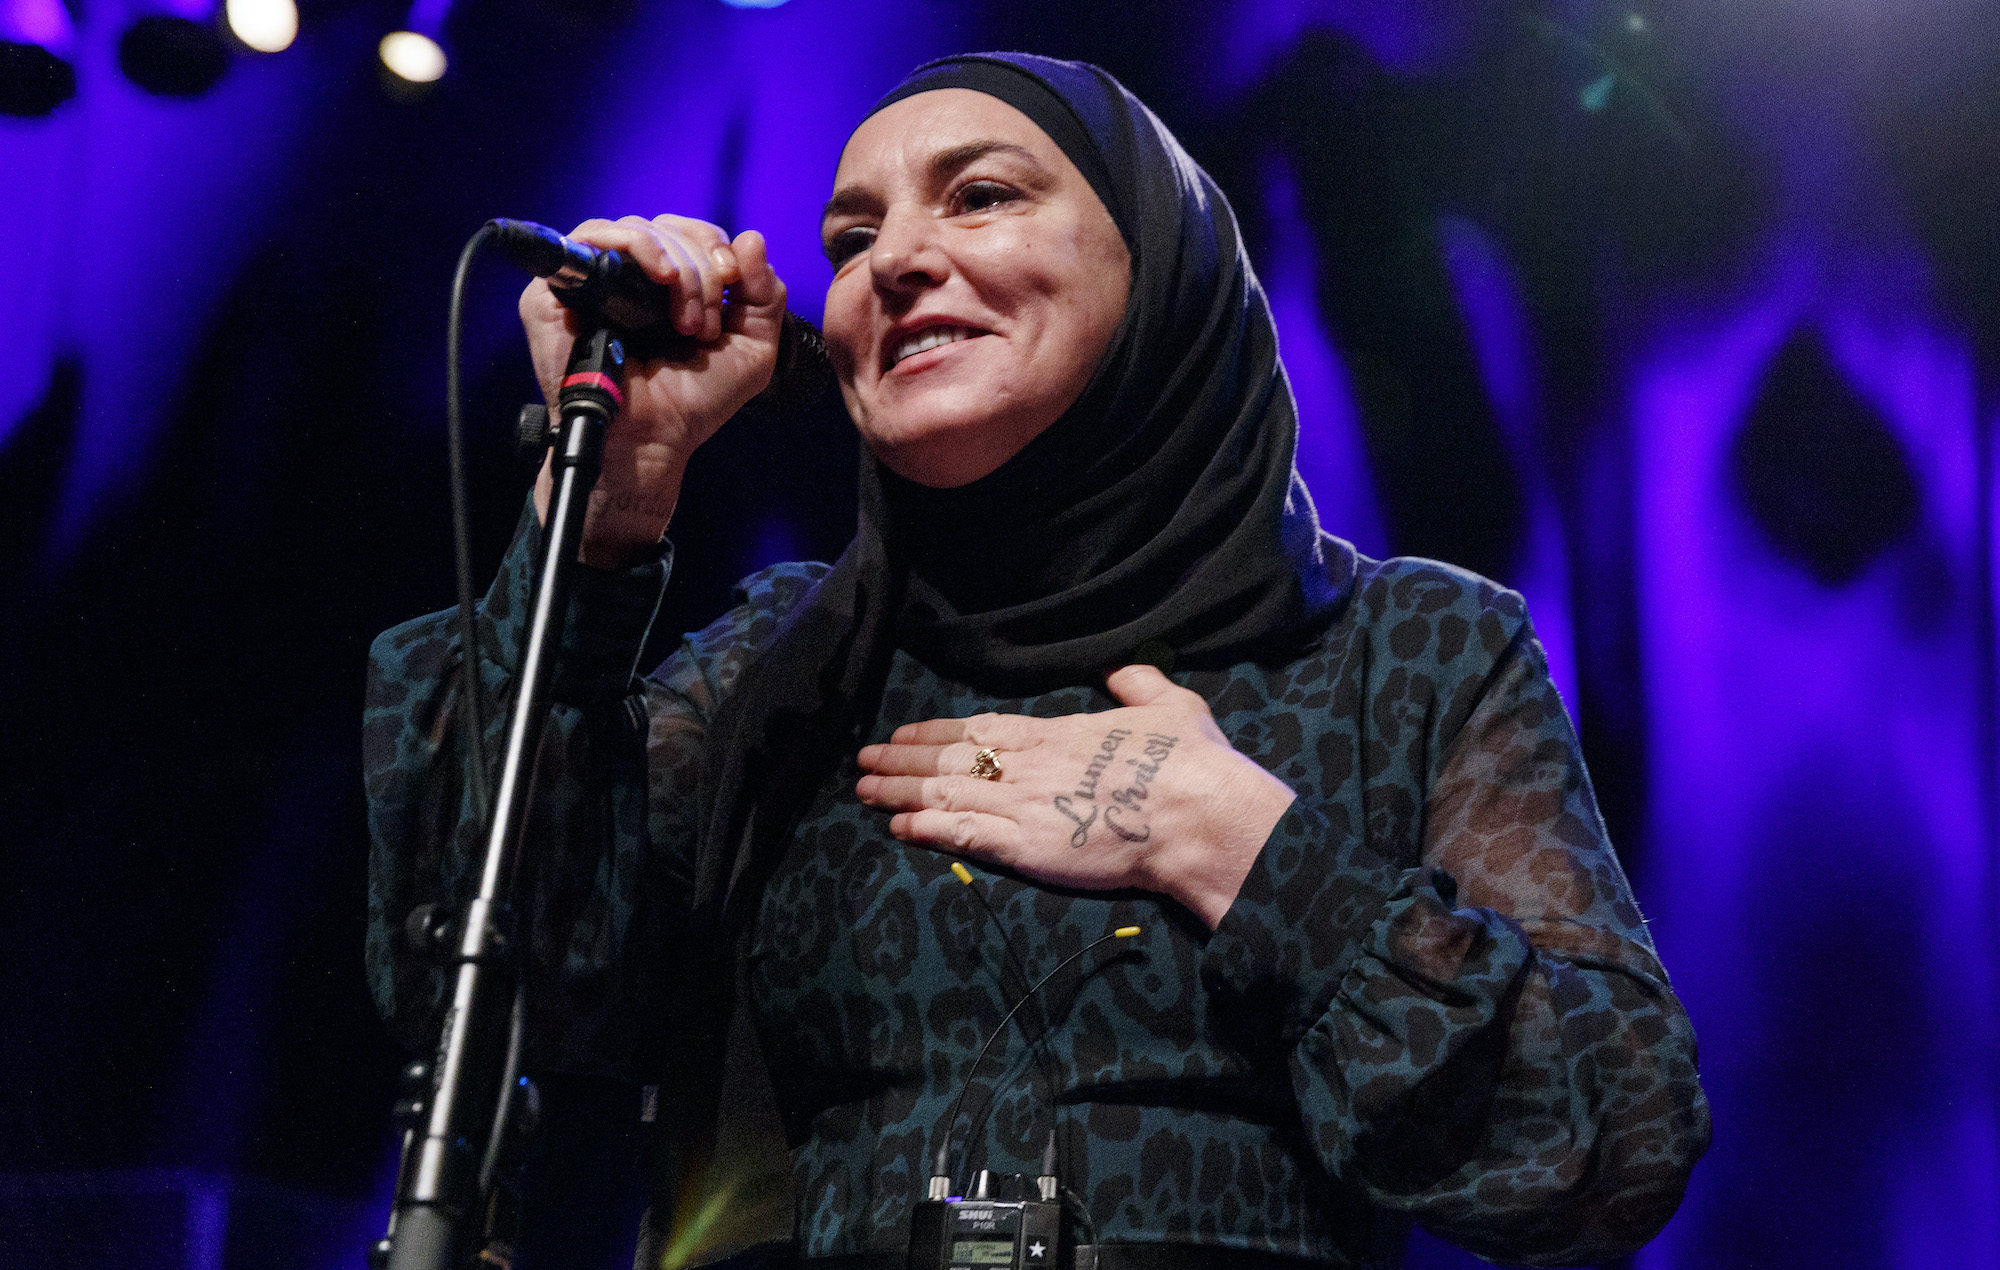 """Sinead O'Connor confirms retirement from music industry: """"We had a great adventure"""""""